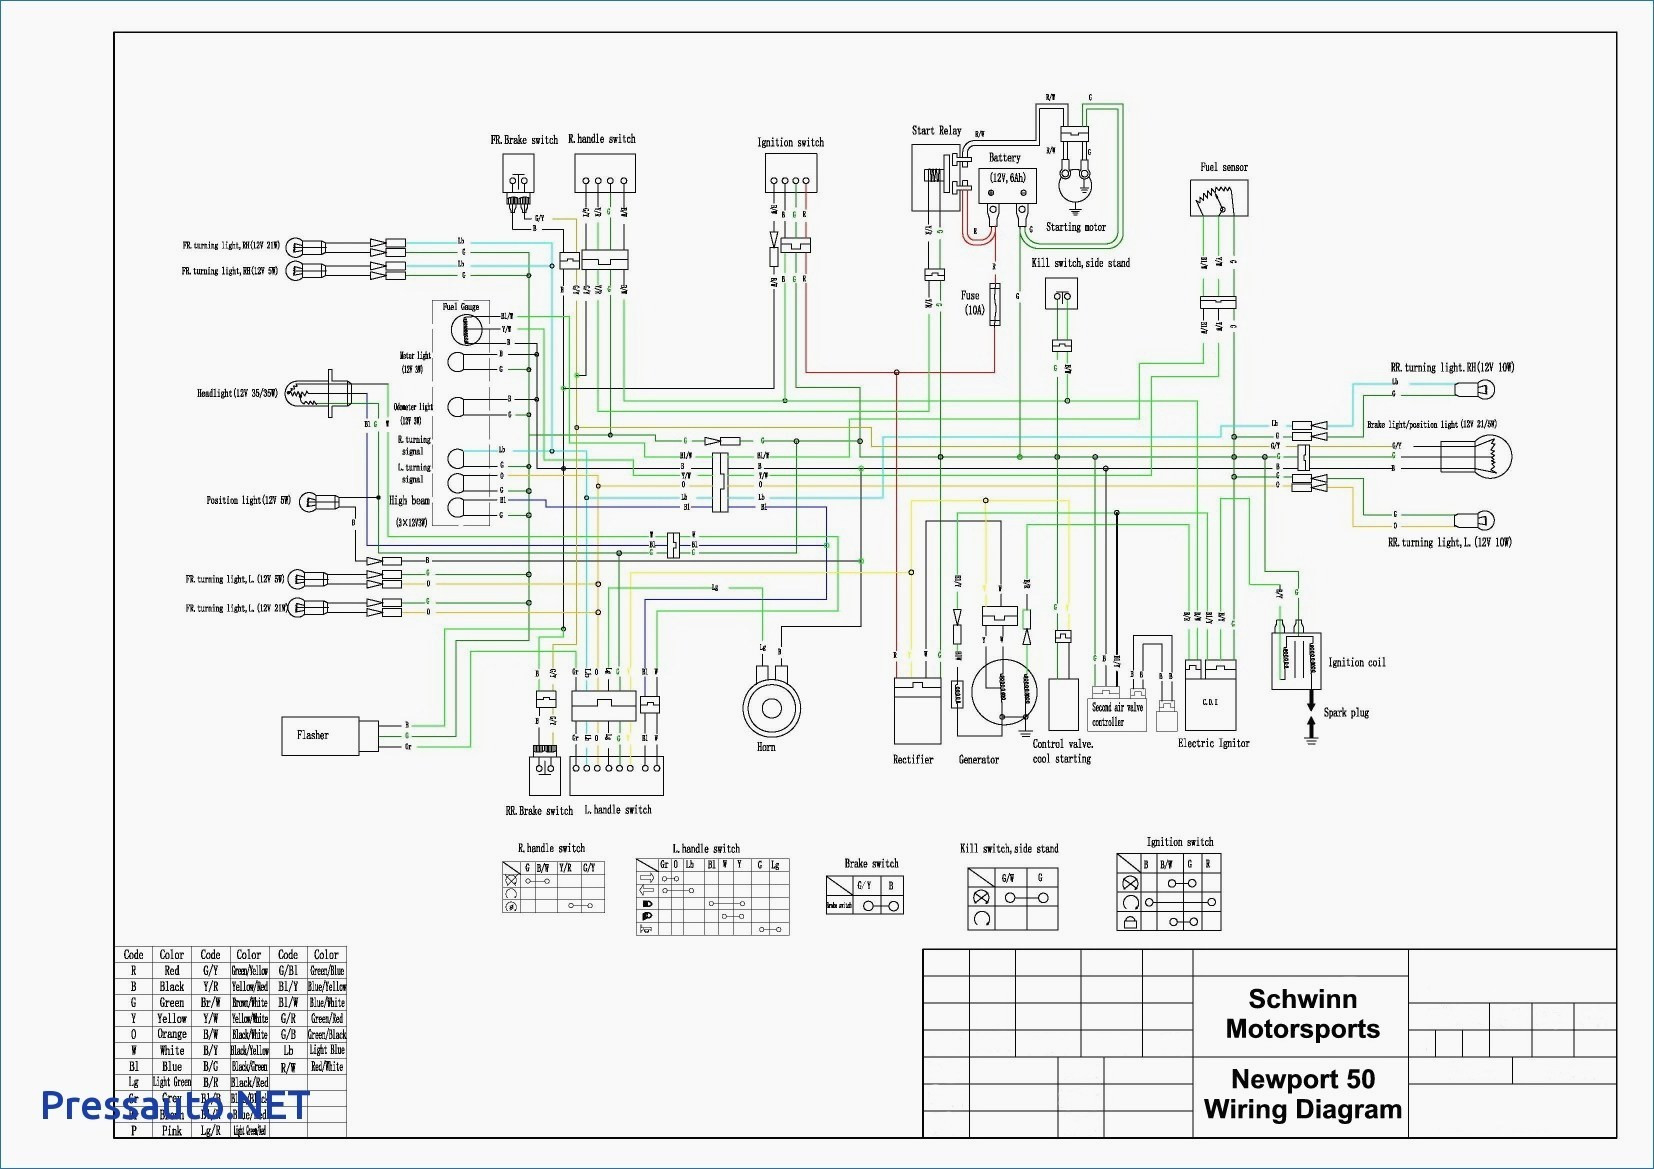 [SCHEMATICS_48YU]  Victory 8 Ball Wiring Diagram -2008 Chevy Cobalt Suspension Diagram |  Begeboy Wiring Diagram Source | Victory Vision Wiring Diagram |  | Begeboy Wiring Diagram Source